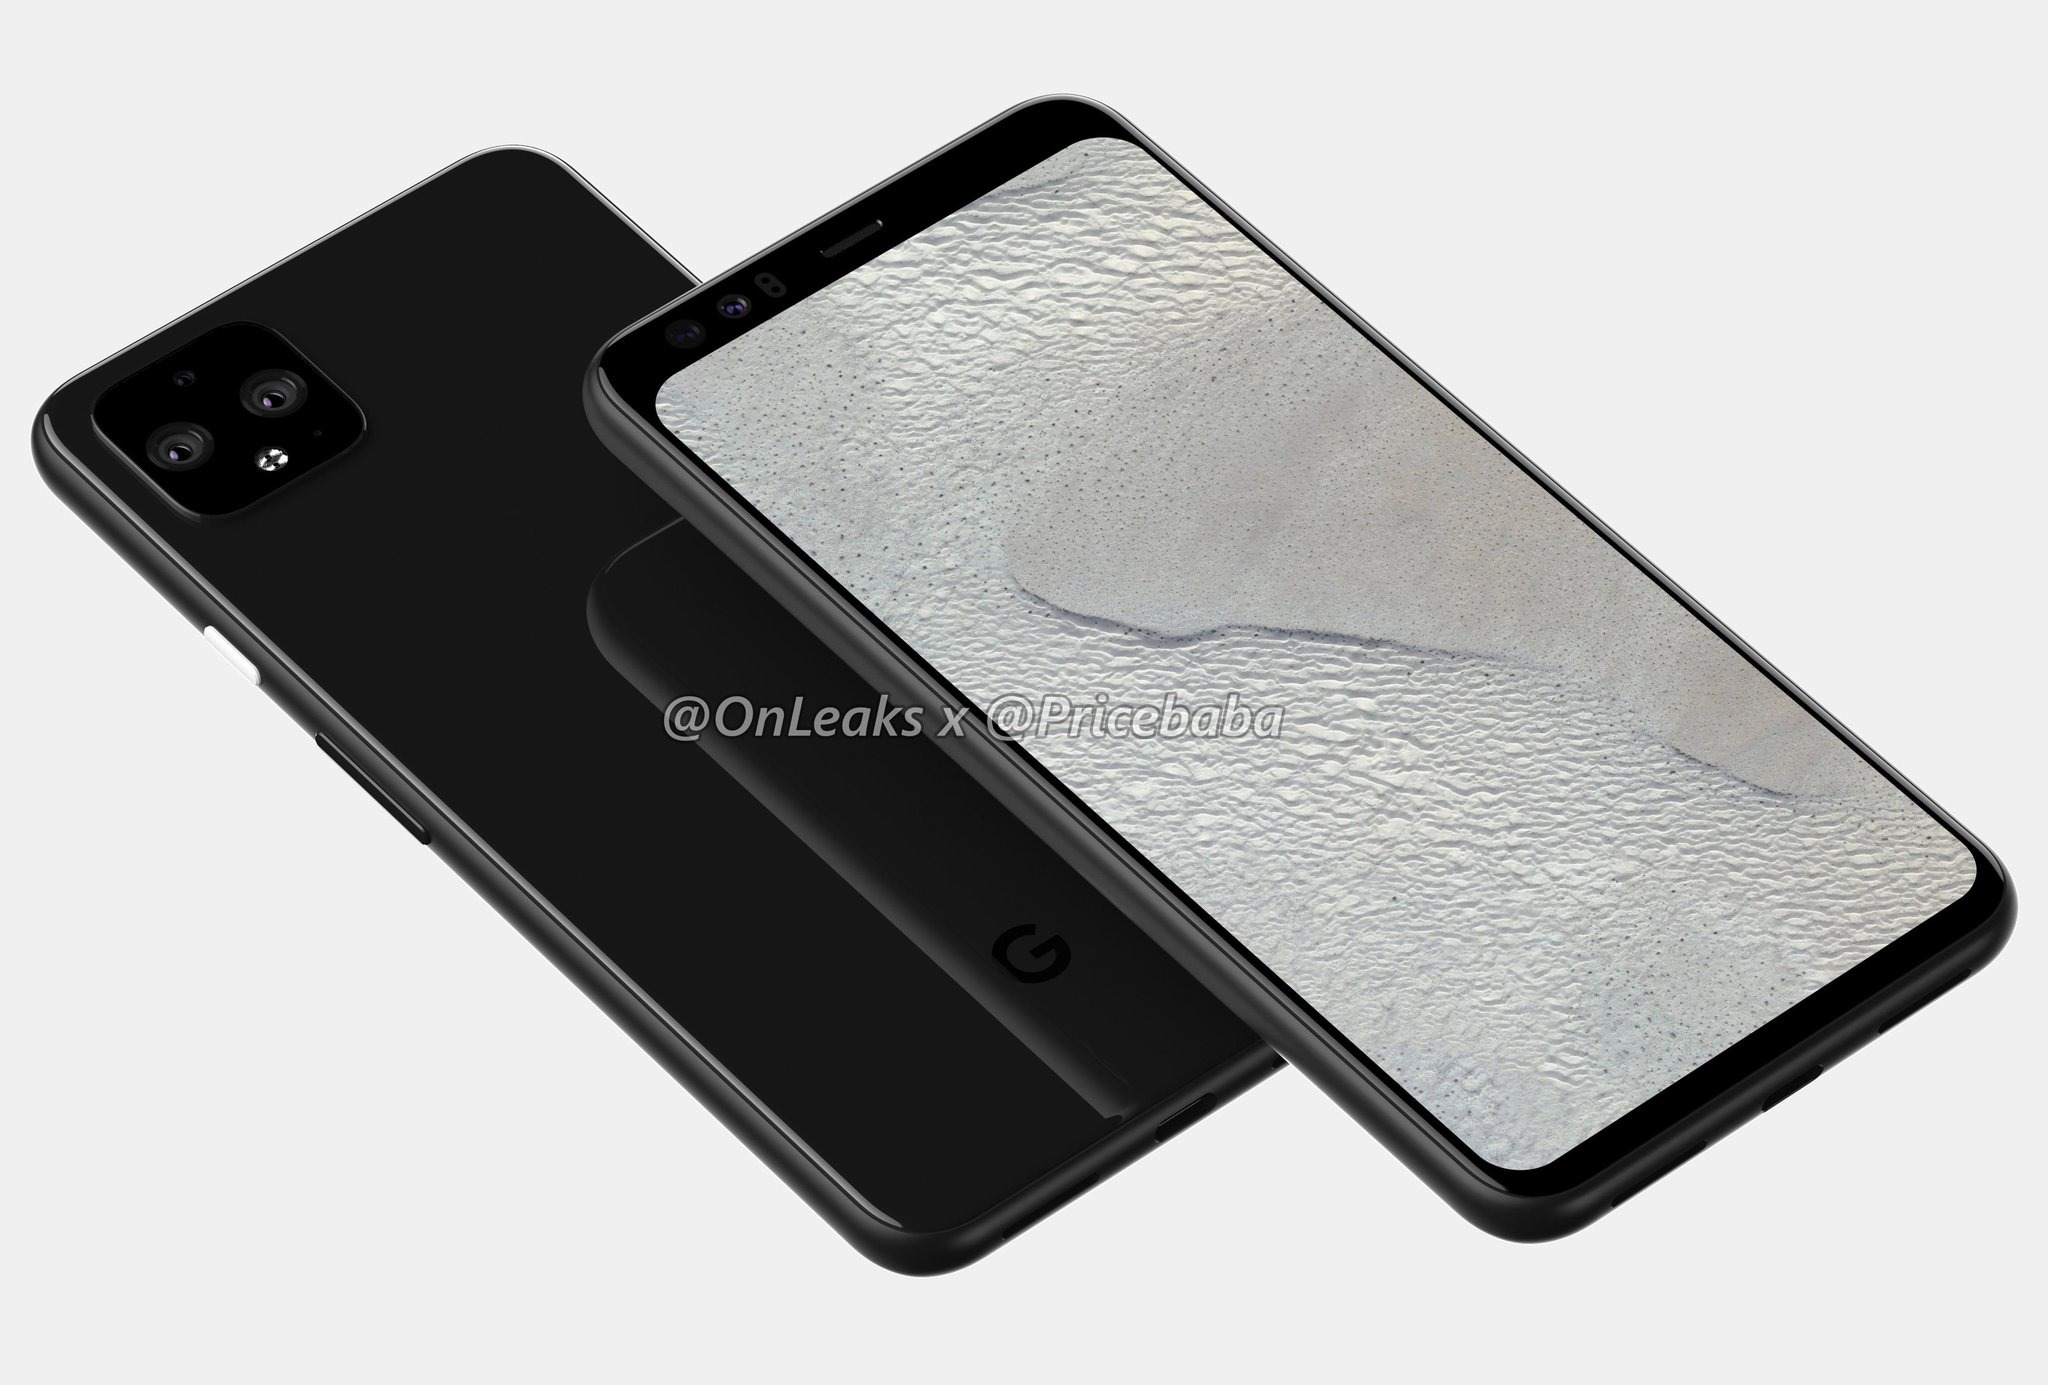 Sforum - D-9GwovU8AEvYK_.jpglarge Running Snapdragon 855 but the performance score of Pixel 4 XL loses even the mid-range chip